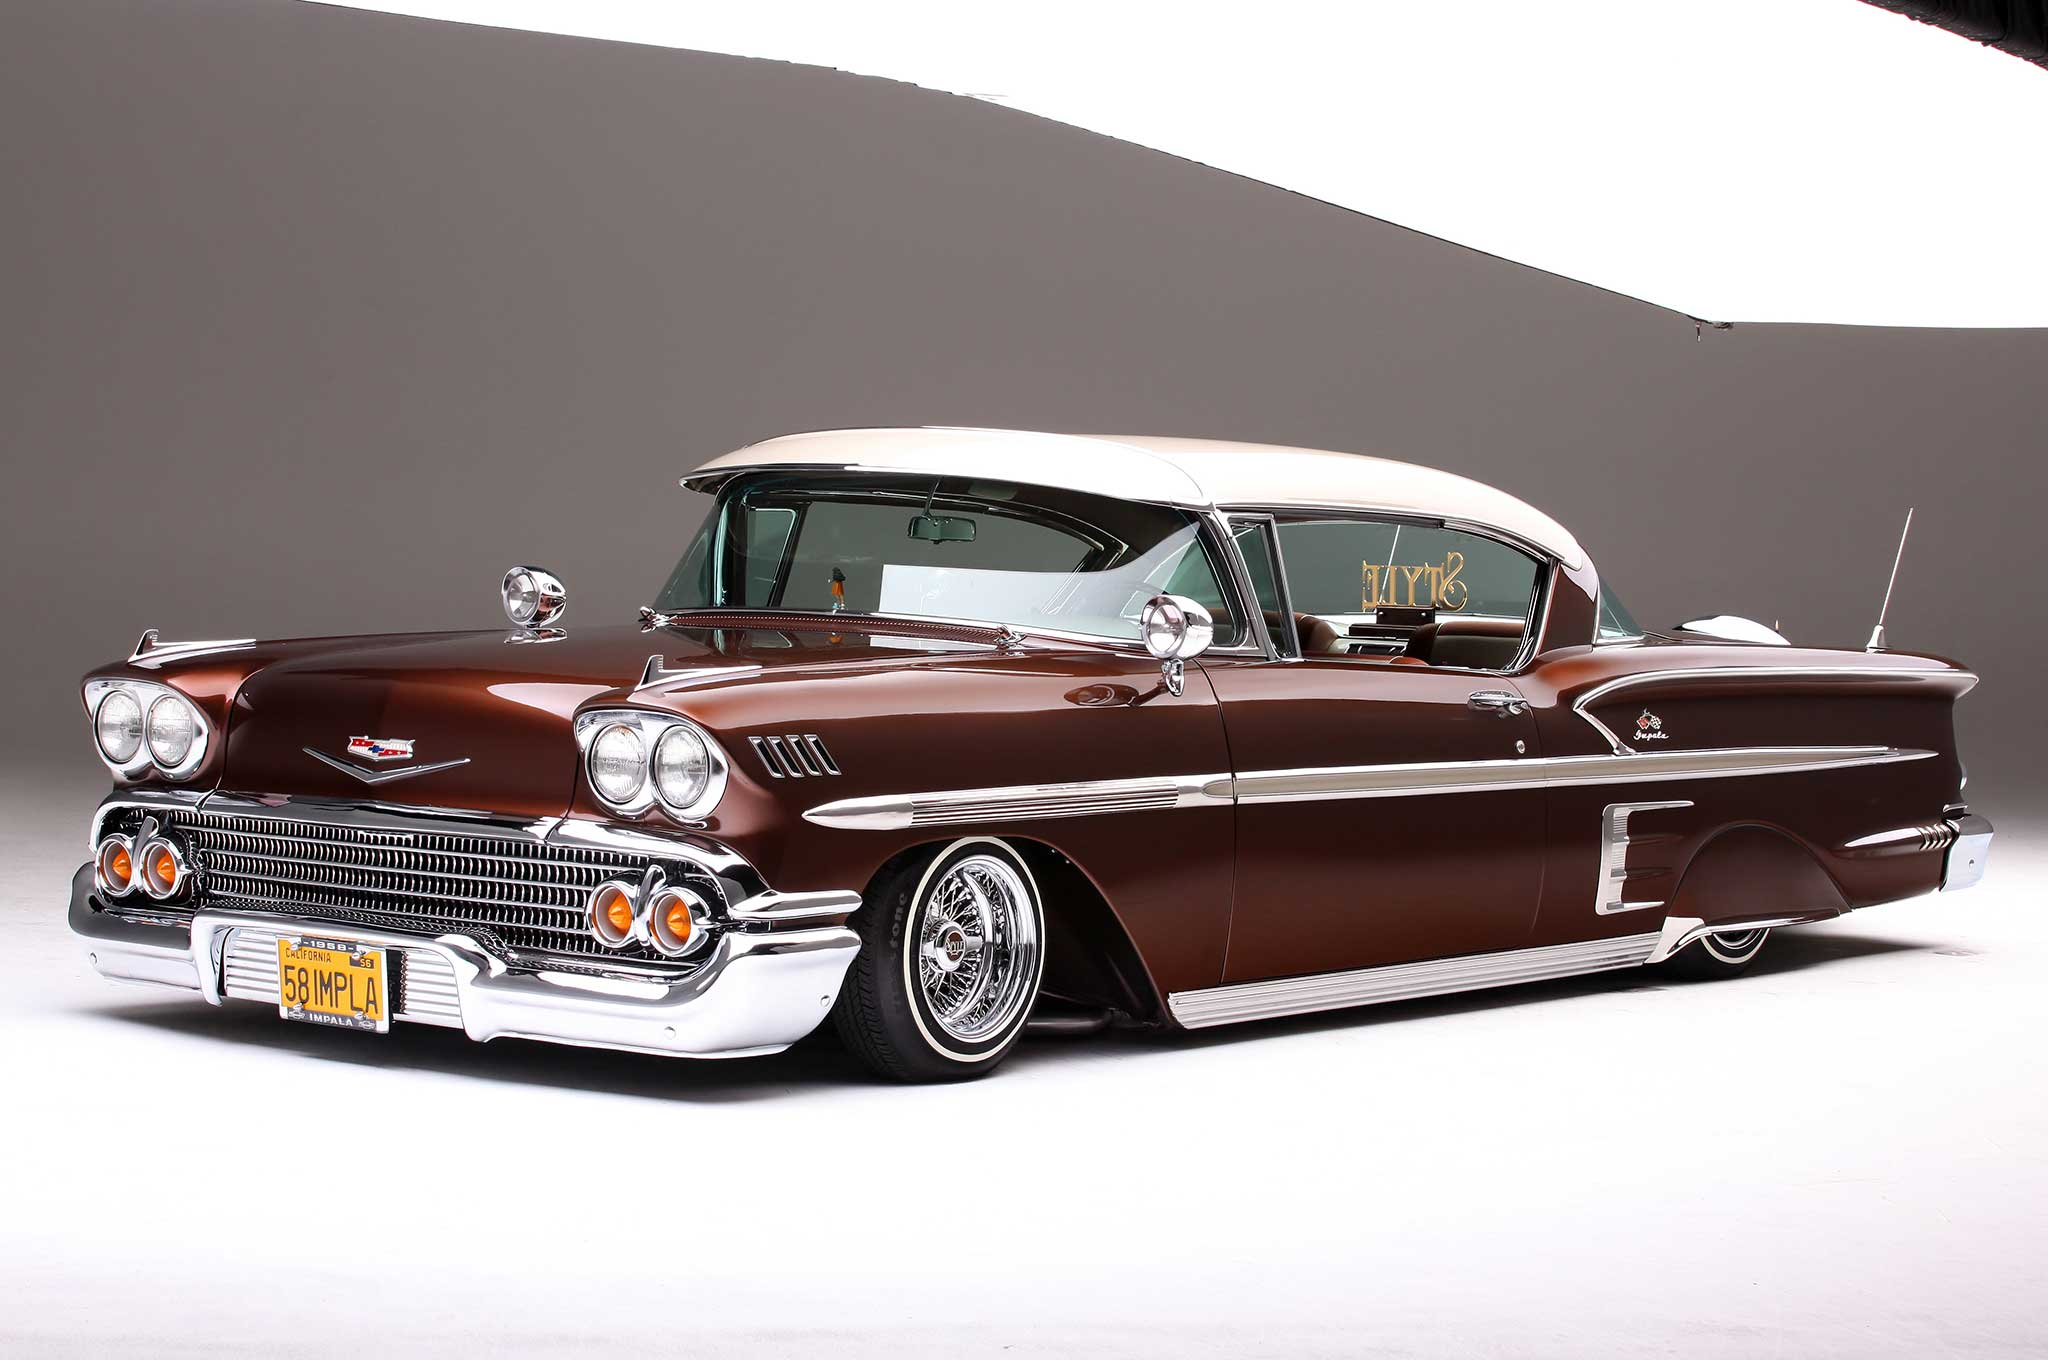 Old Chevy Cars >> 1958 Chevrolet Impala - Gentleman's Style of a '58 - Lowrider